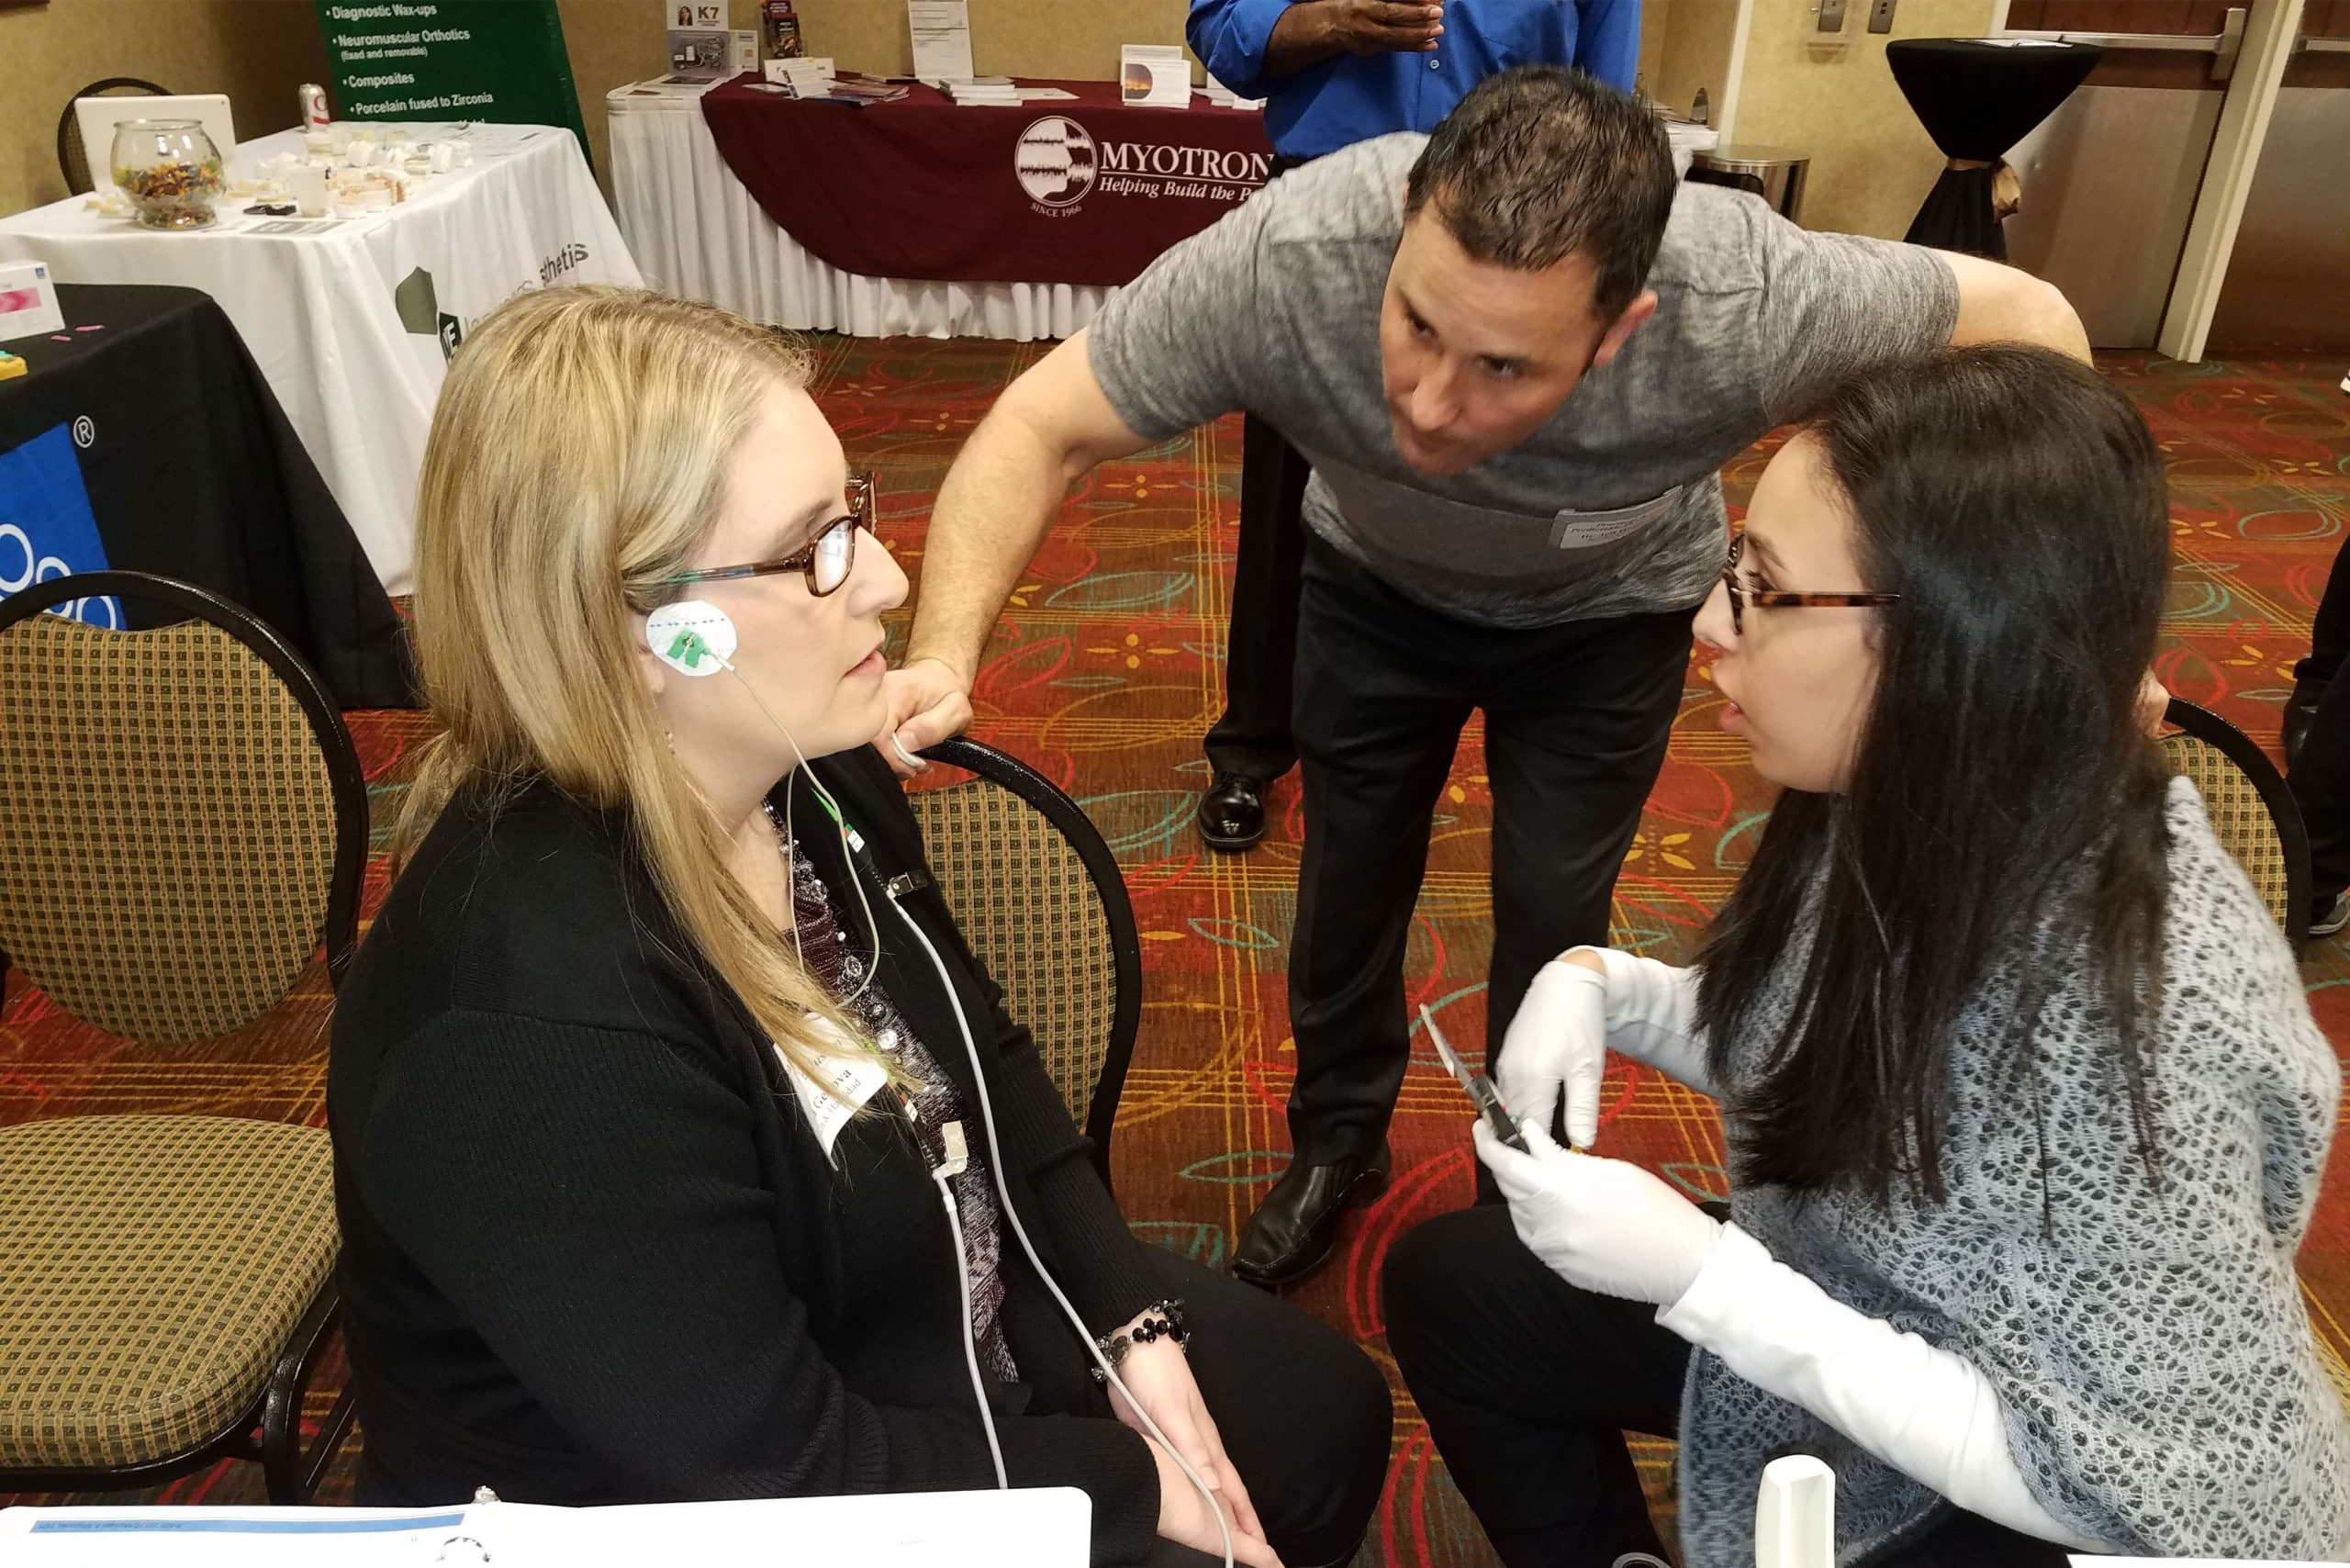 Dentist Dr. Jeff Haddad working with a patient at a sleep & tmj conference